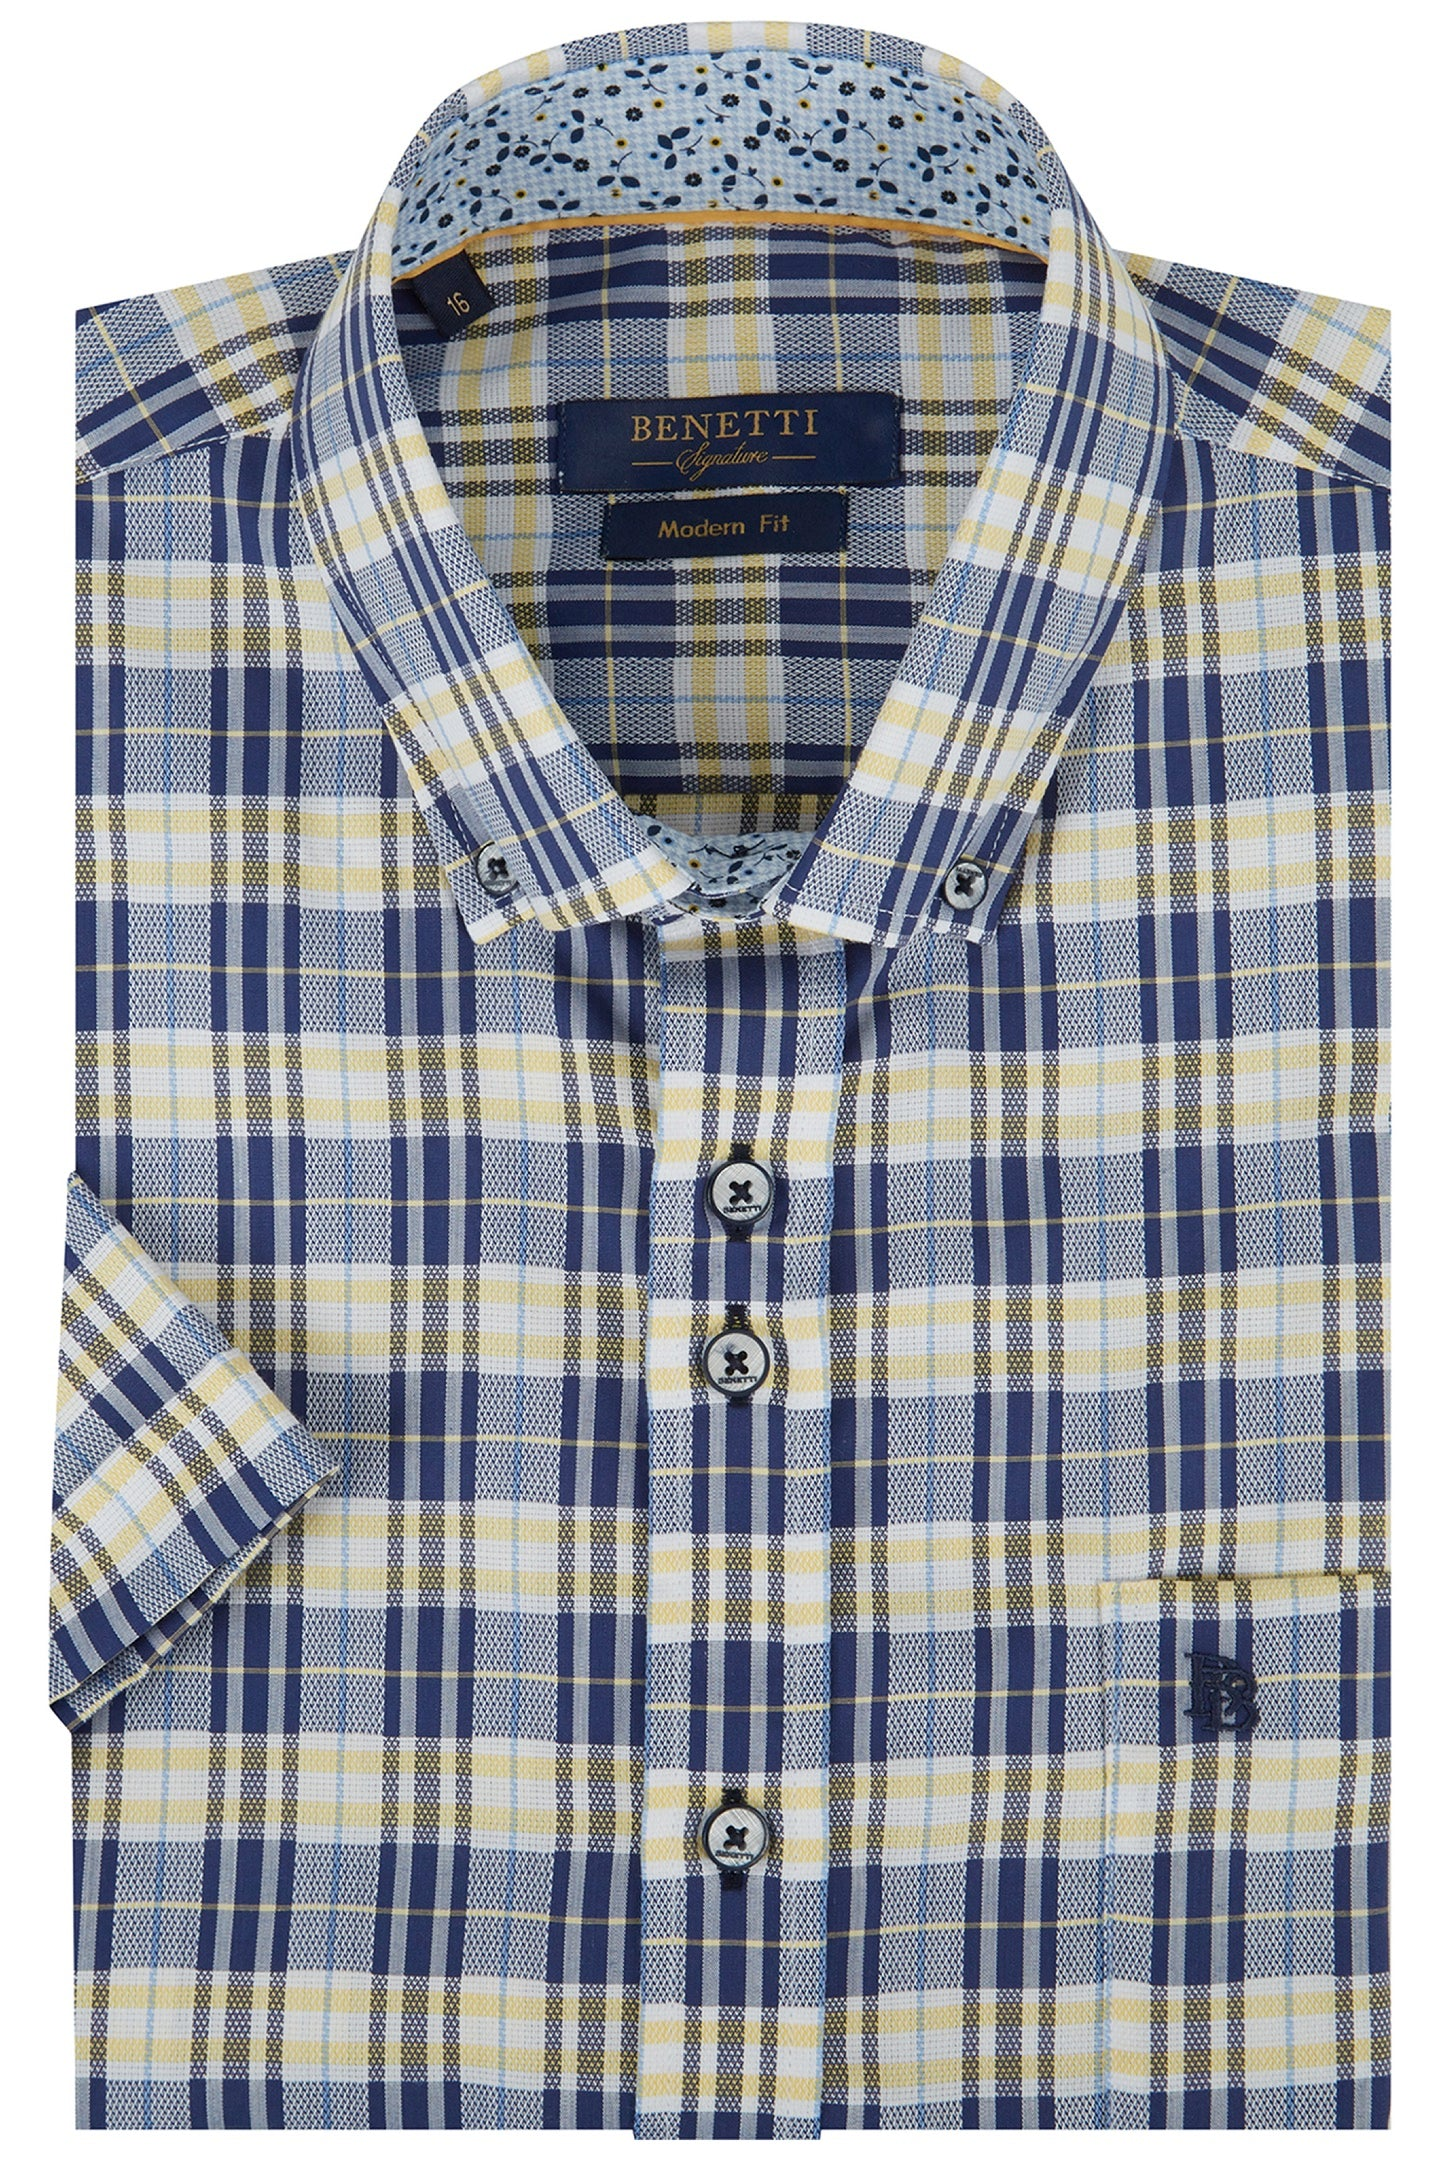 Benetti Bret Short Sleeve Shirt